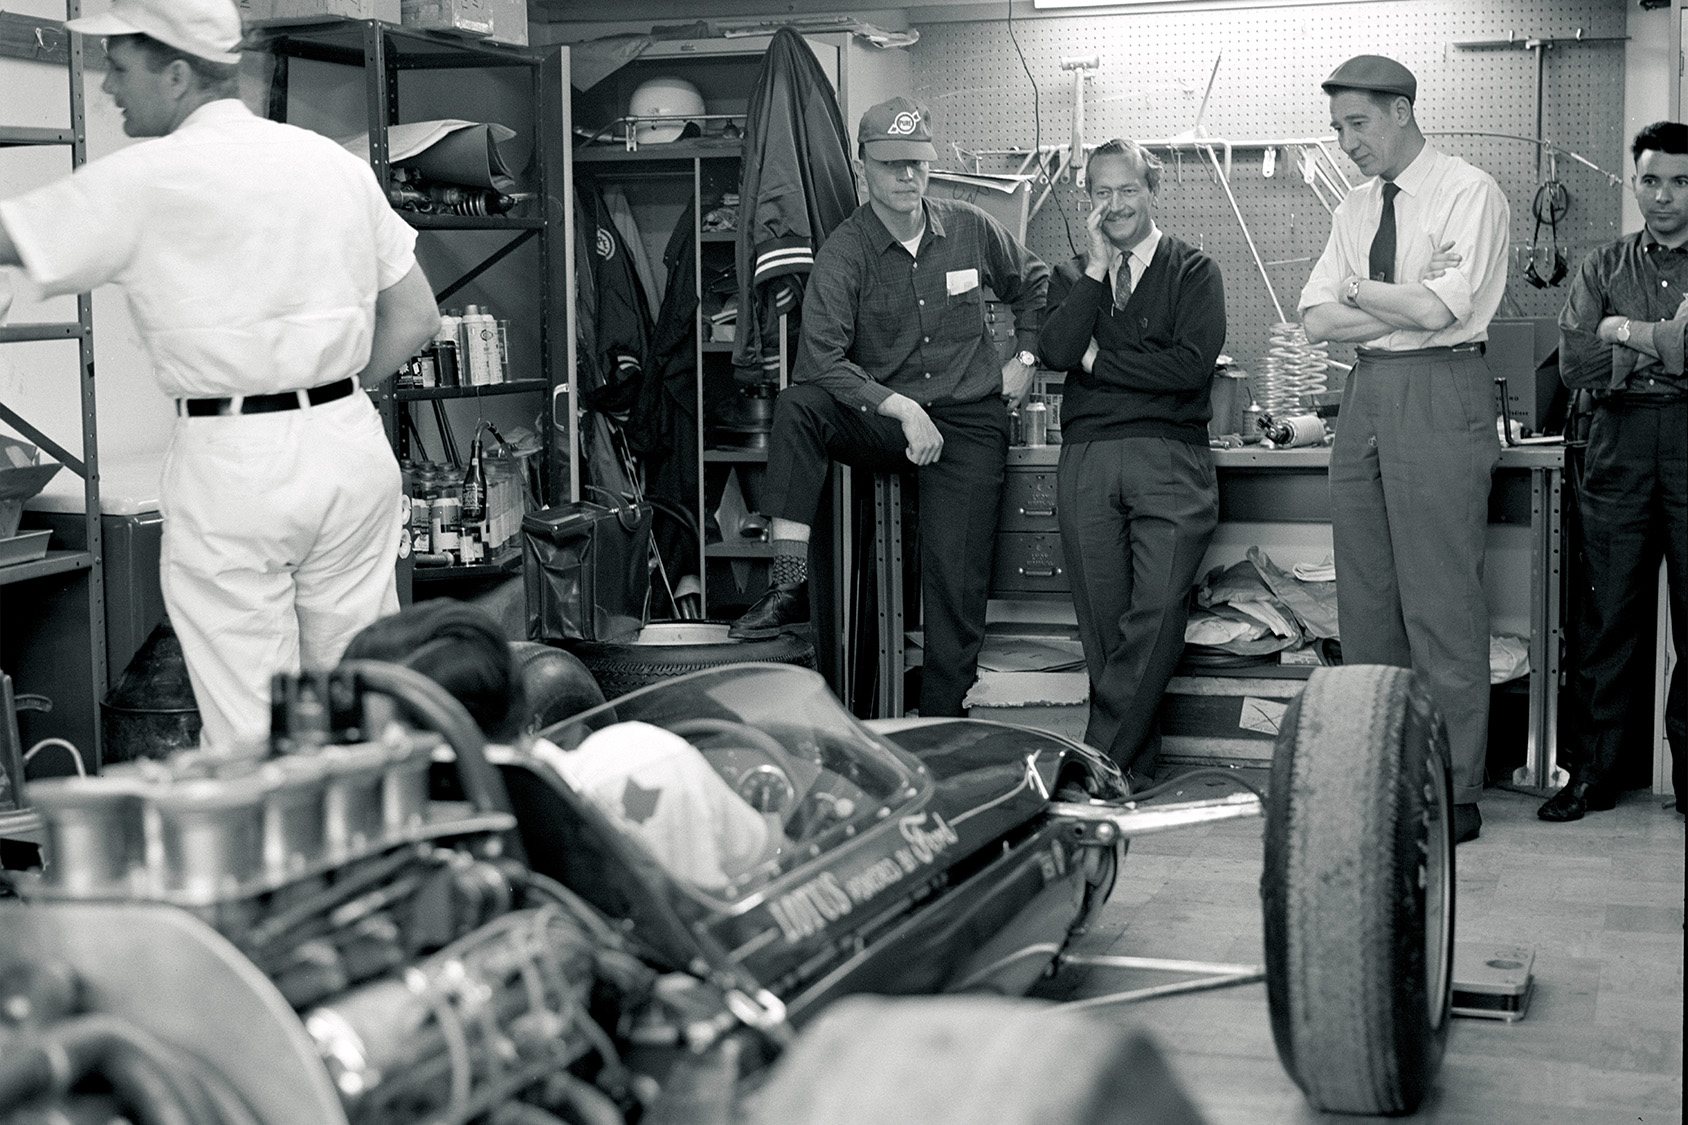 Dan Gurney with Colin Chapman at the 1963 indy 500